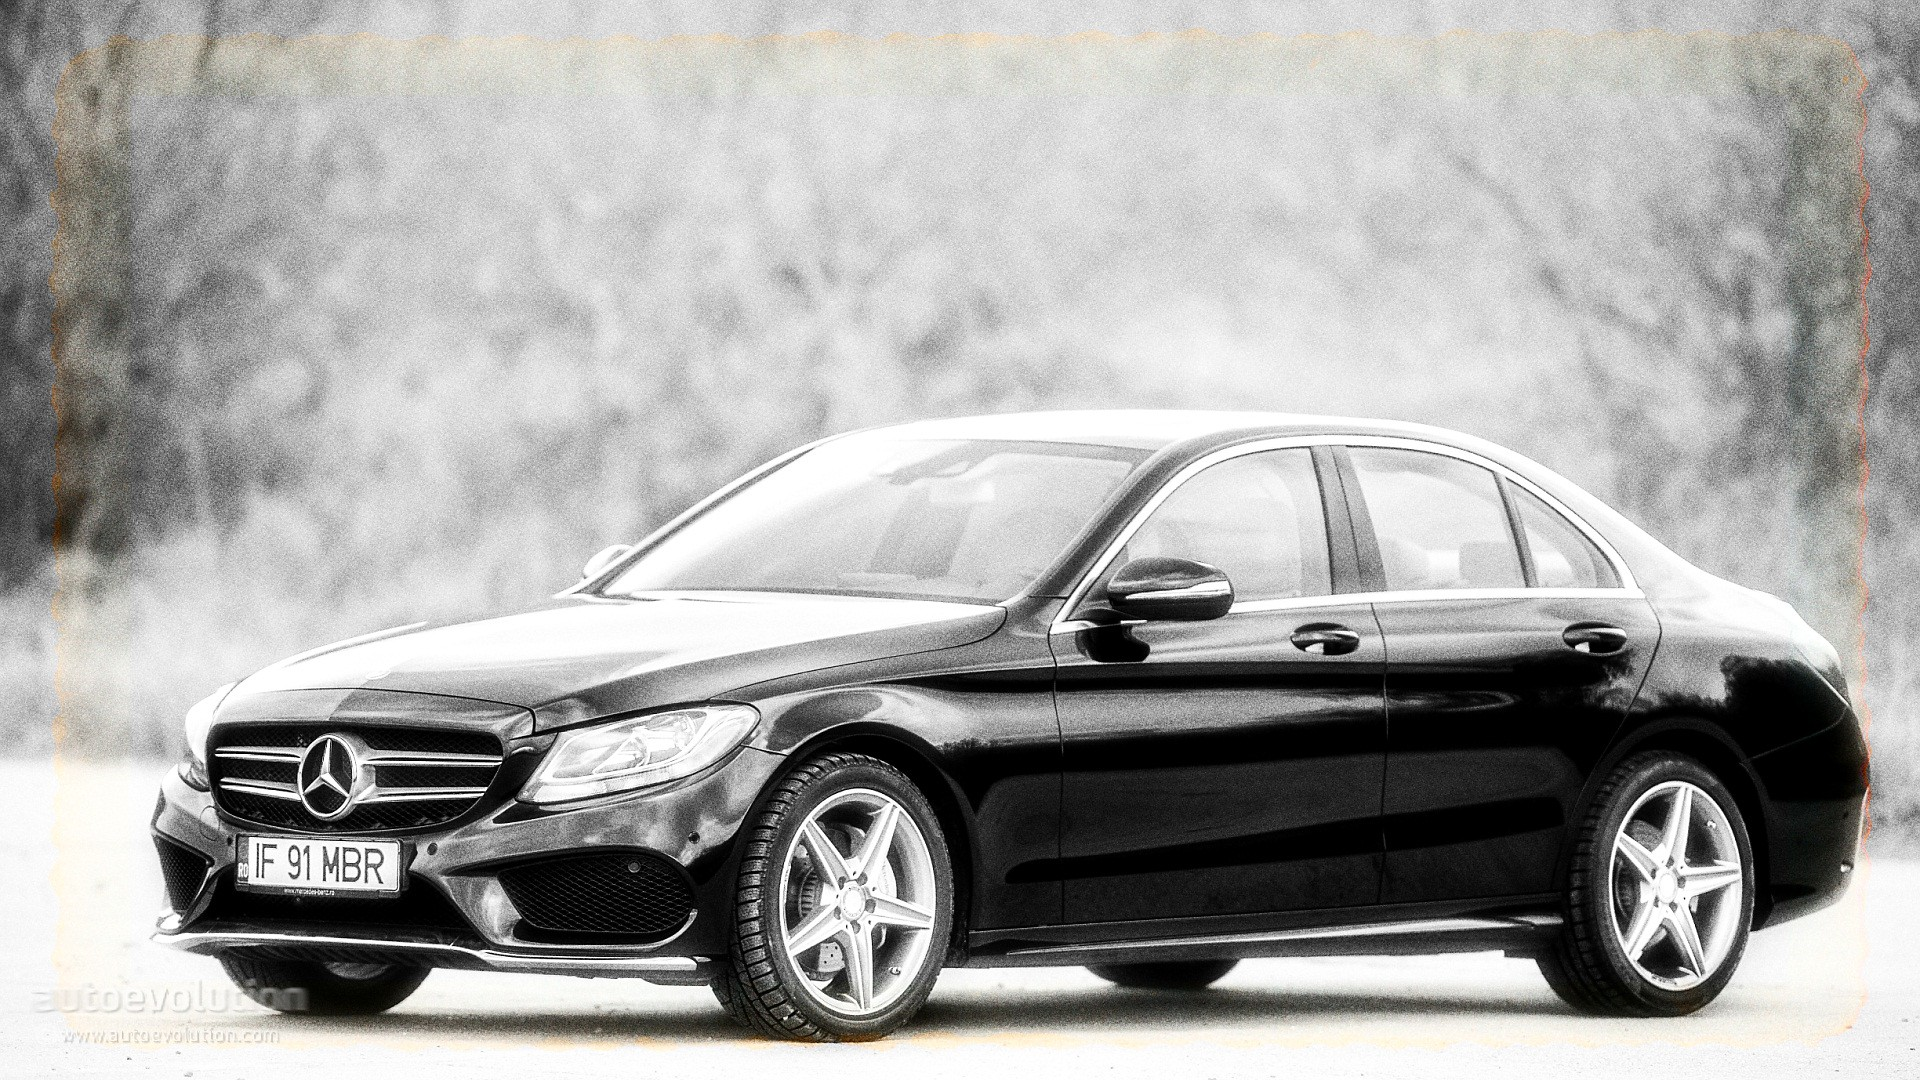 2015 mercedes benz c class review autoevolution for Mercedes benz c class review